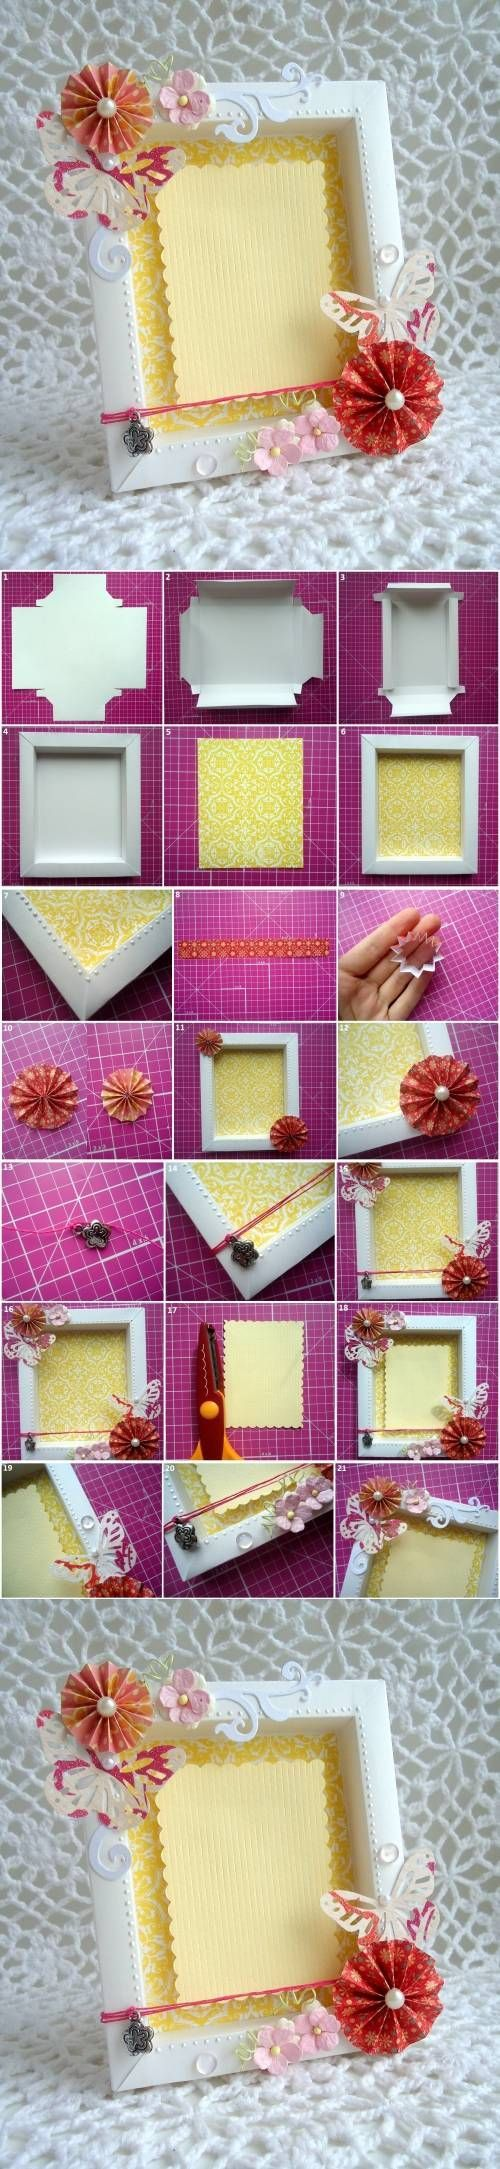 DIY Cool Picture Frame Designs DIY Projects / UsefulDIY.com